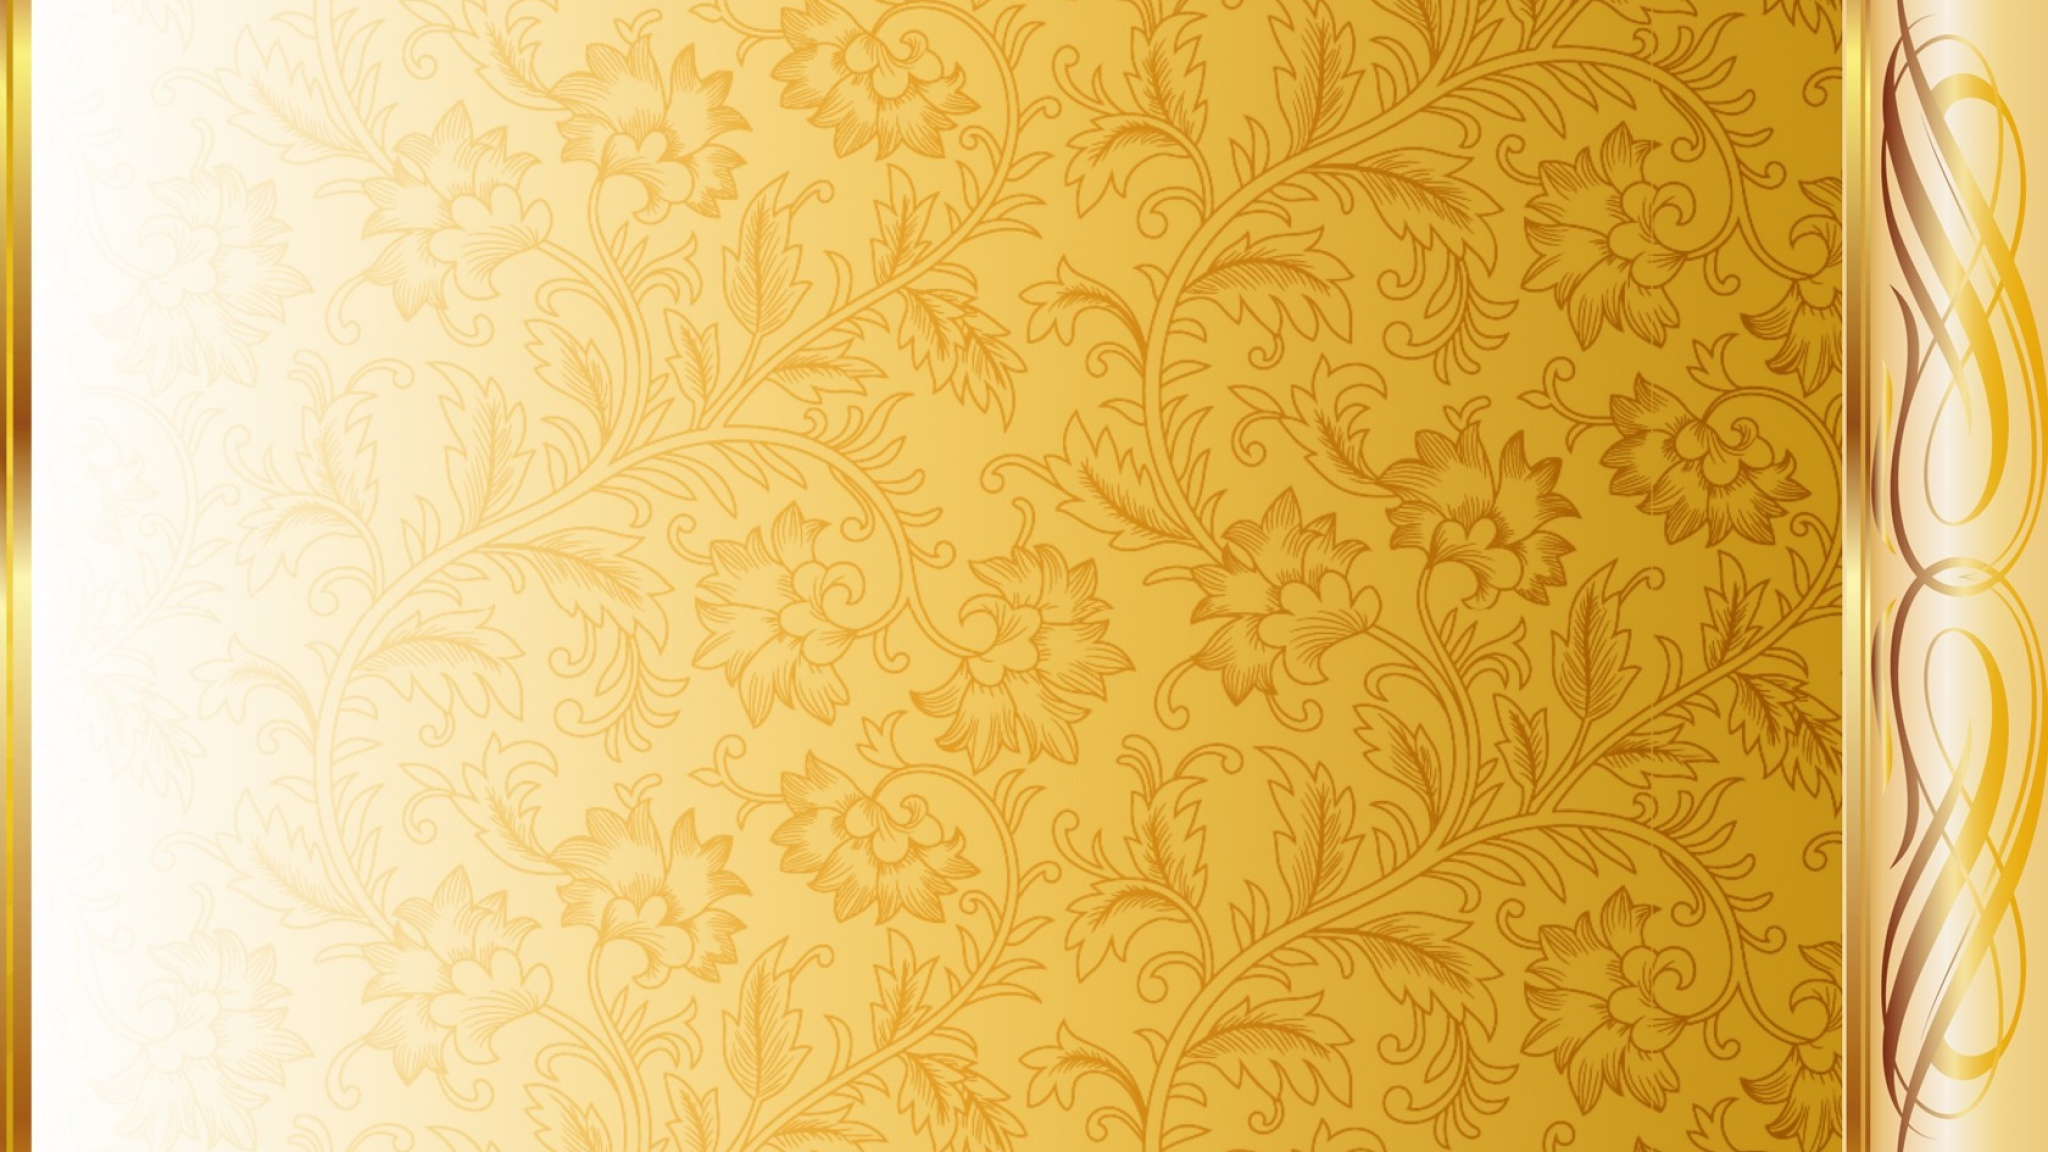 White and Gold wallpaper 2048x1152 82354 2048x1152